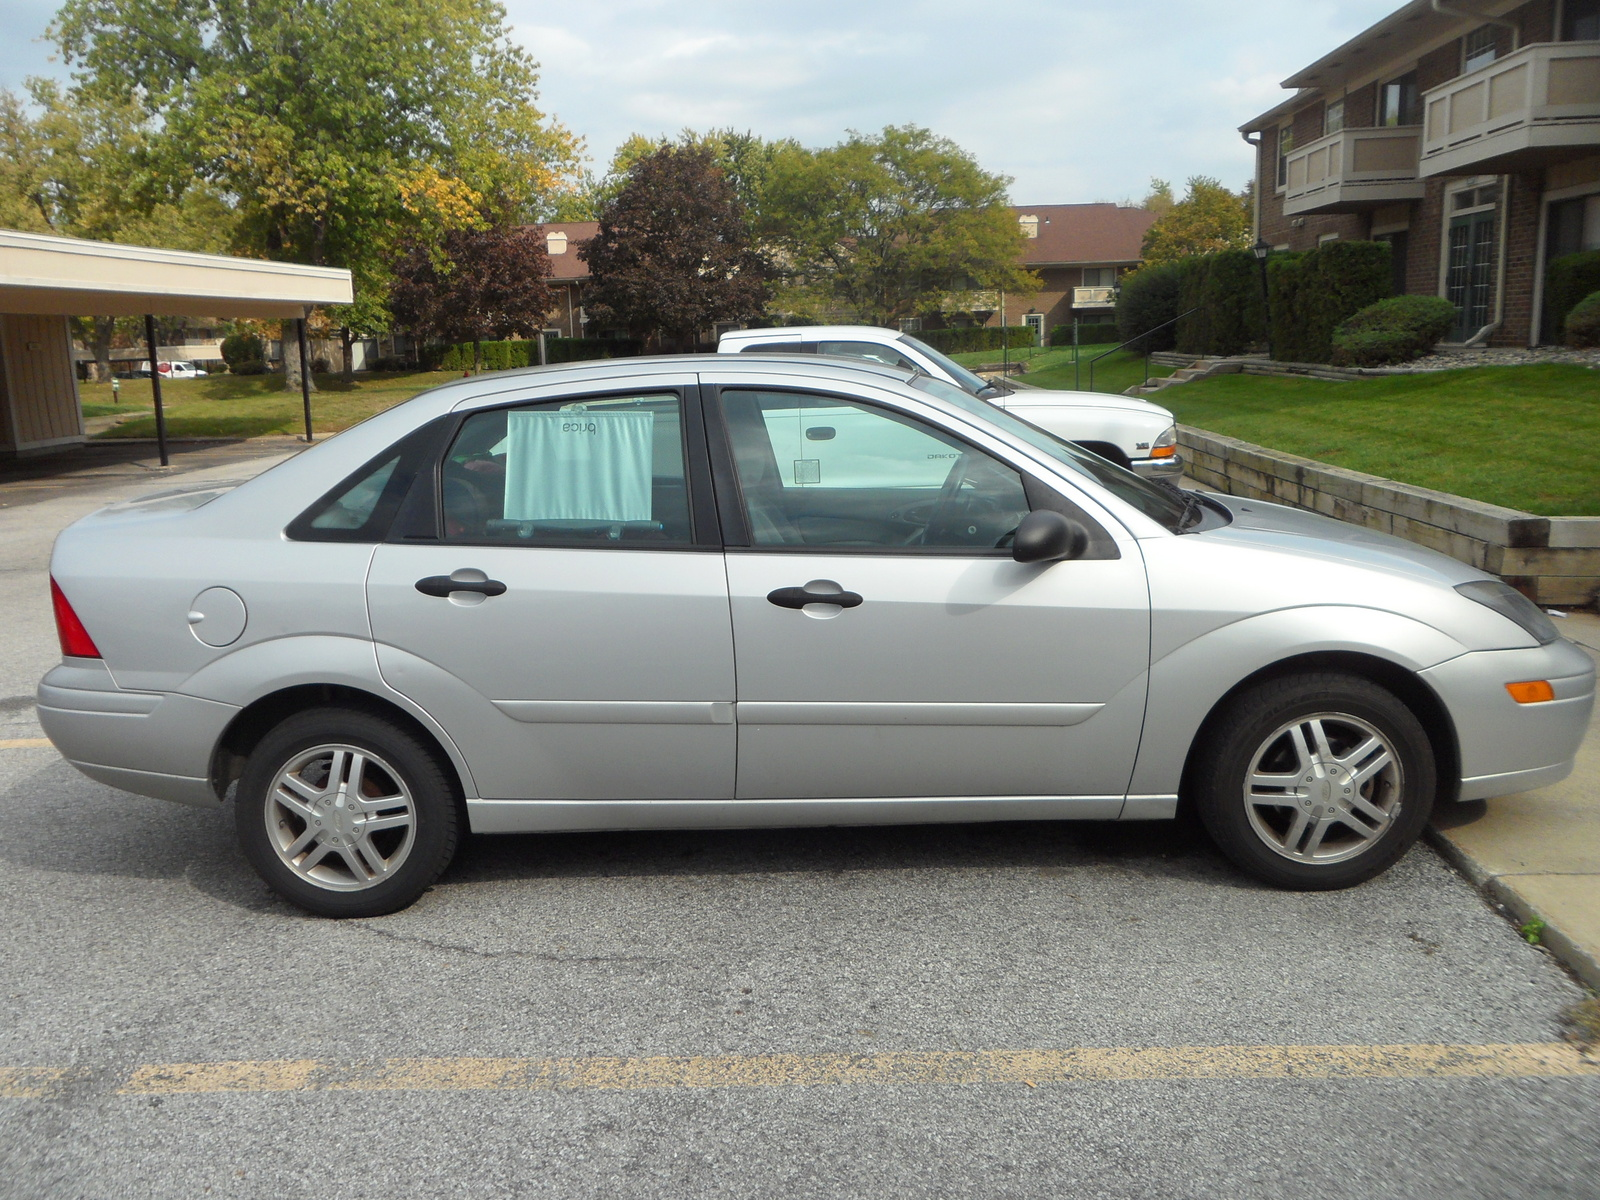 2006 Ford Focus Zx3 >> 2003 Ford Focus - Pictures - CarGurus